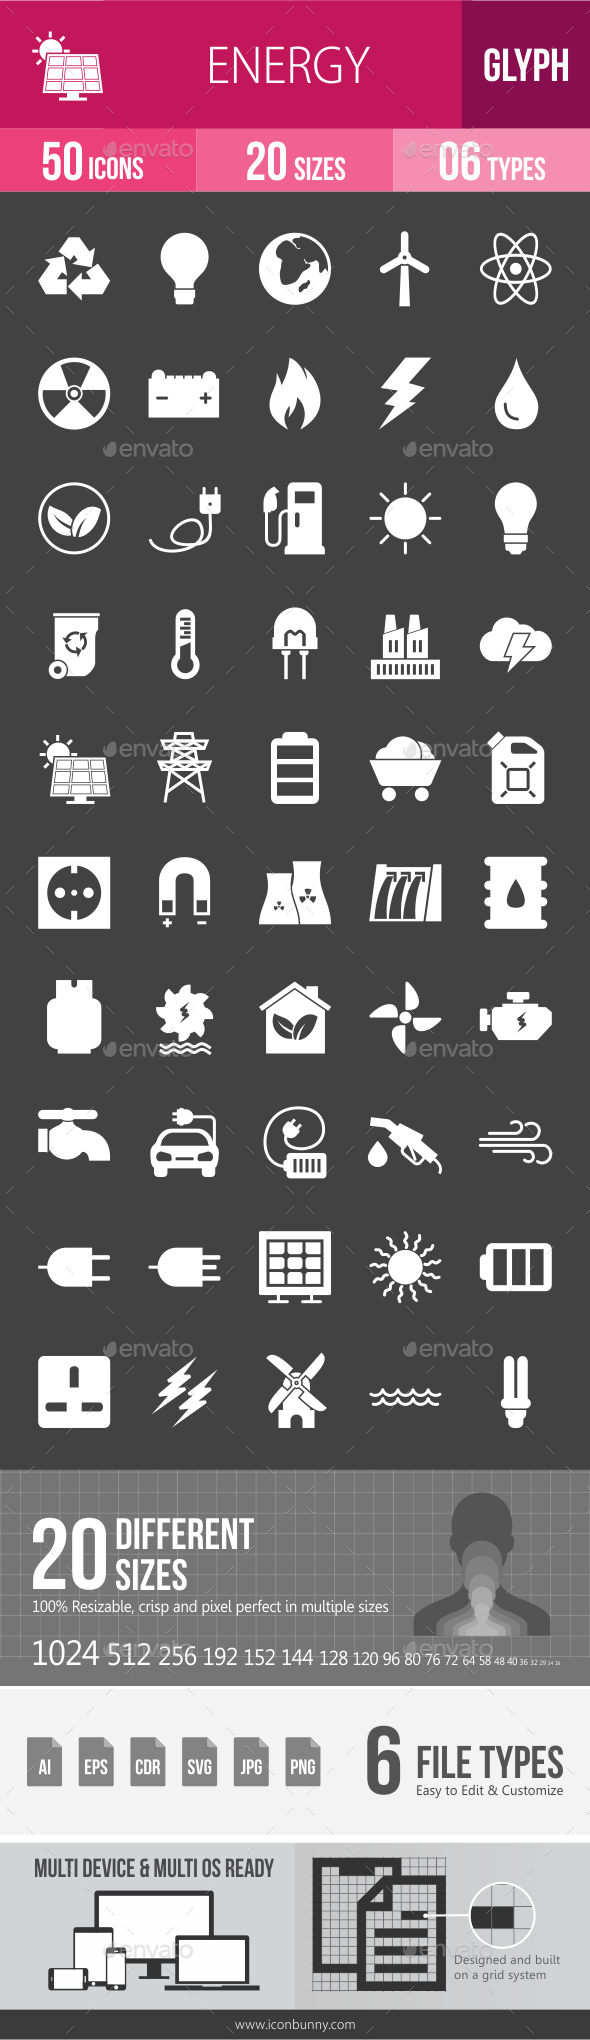 Energy Glyph Inverted Icons